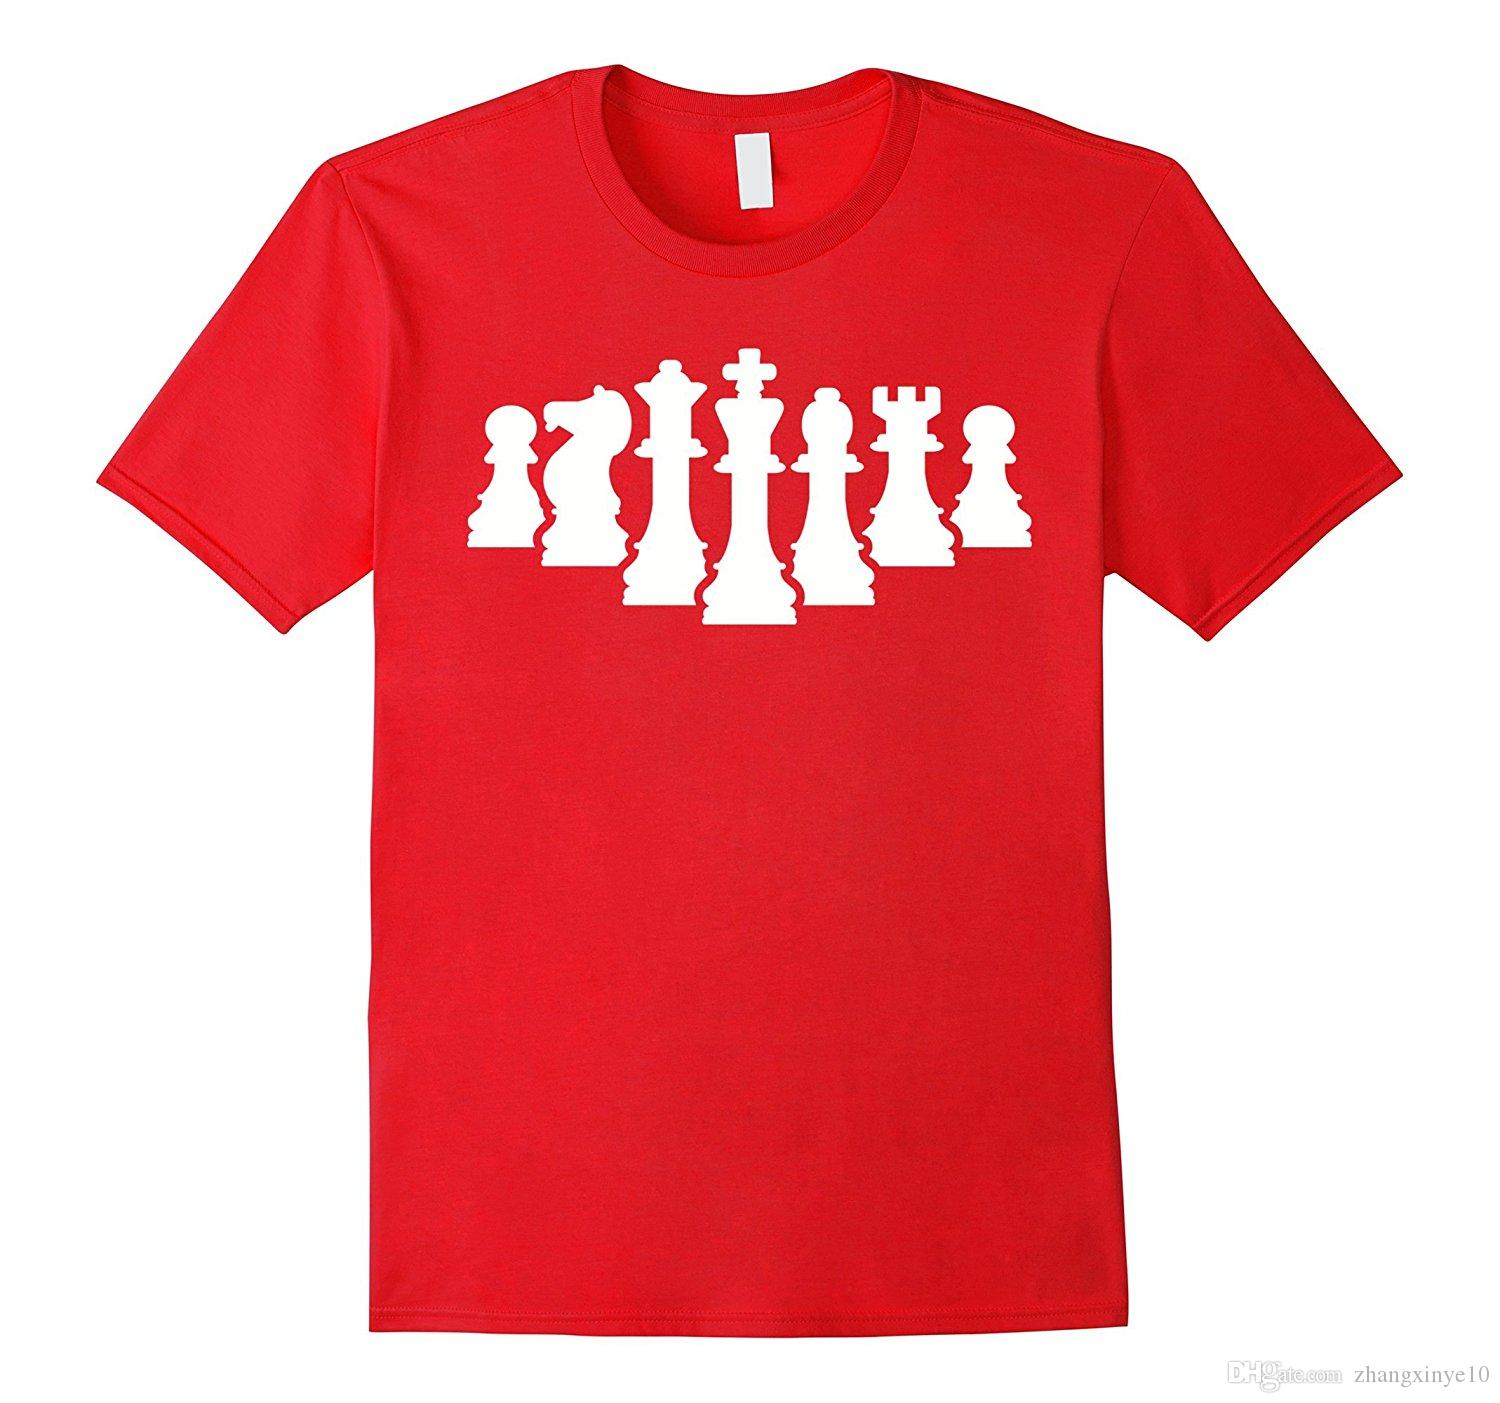 Chess Figures T Shirt Cool Team Shirts Crazy Shirt Designs From